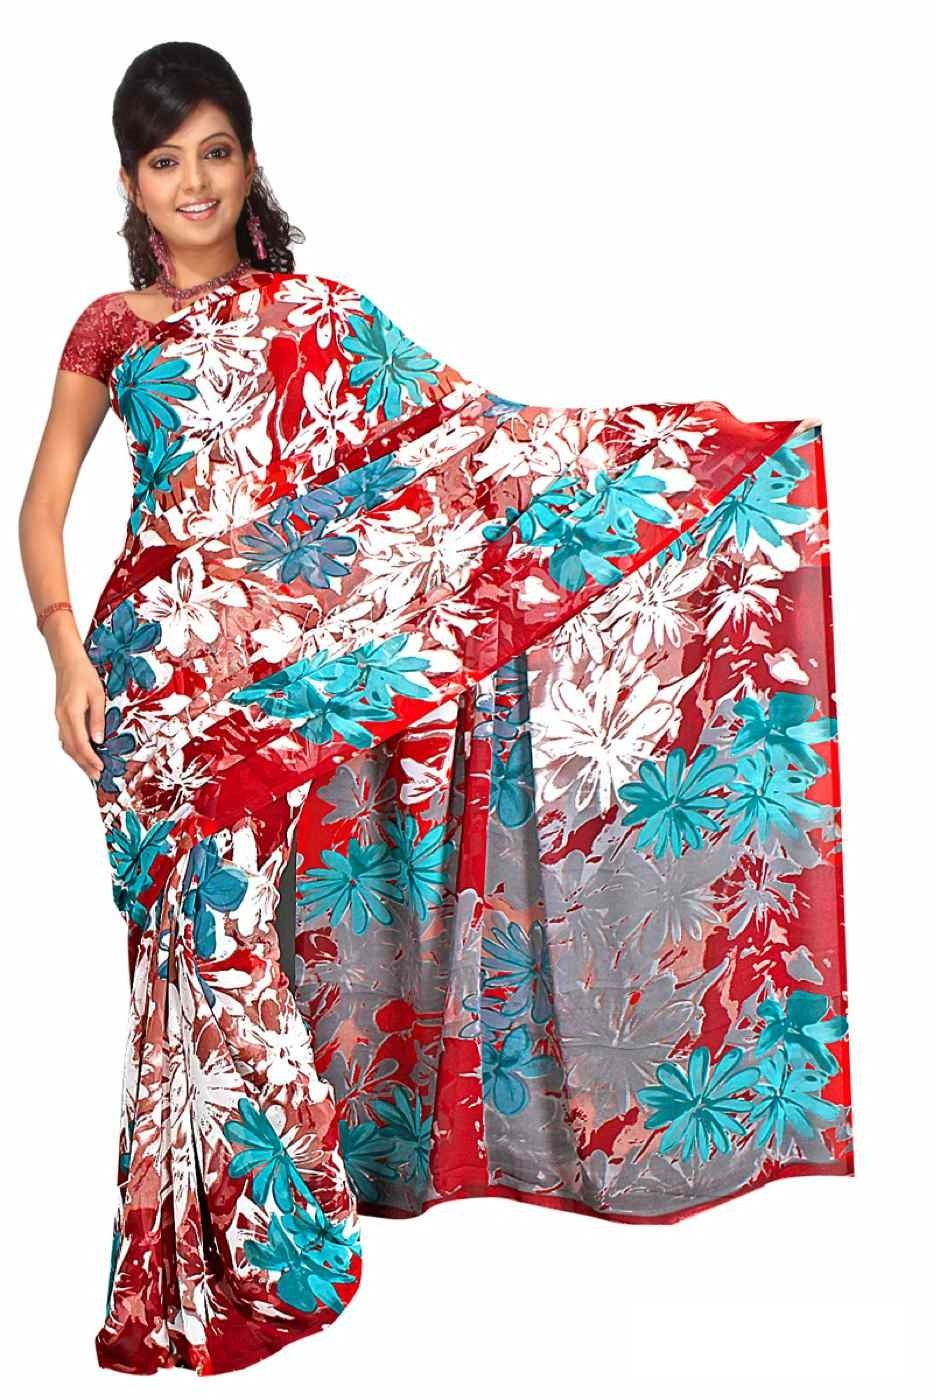 Indian Selections Chhaya Georgette Printed Casual Saree Sari Bellydance fabric at Sears.com